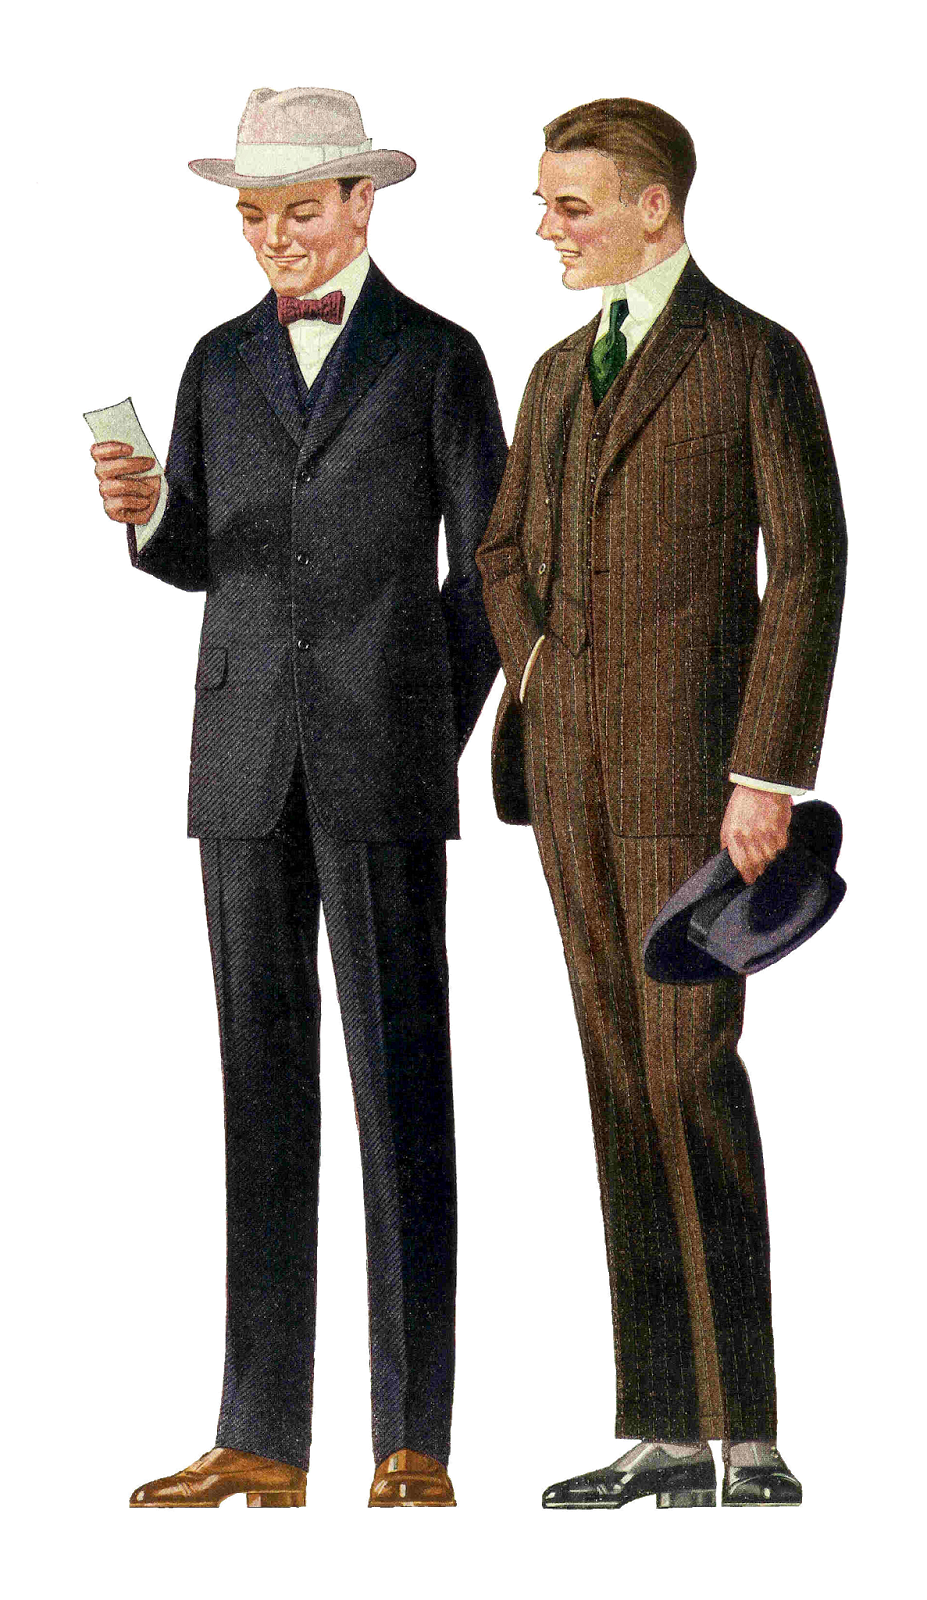 Antique Images: Free Fashion Clip Art: 1915 Men's Suits 2